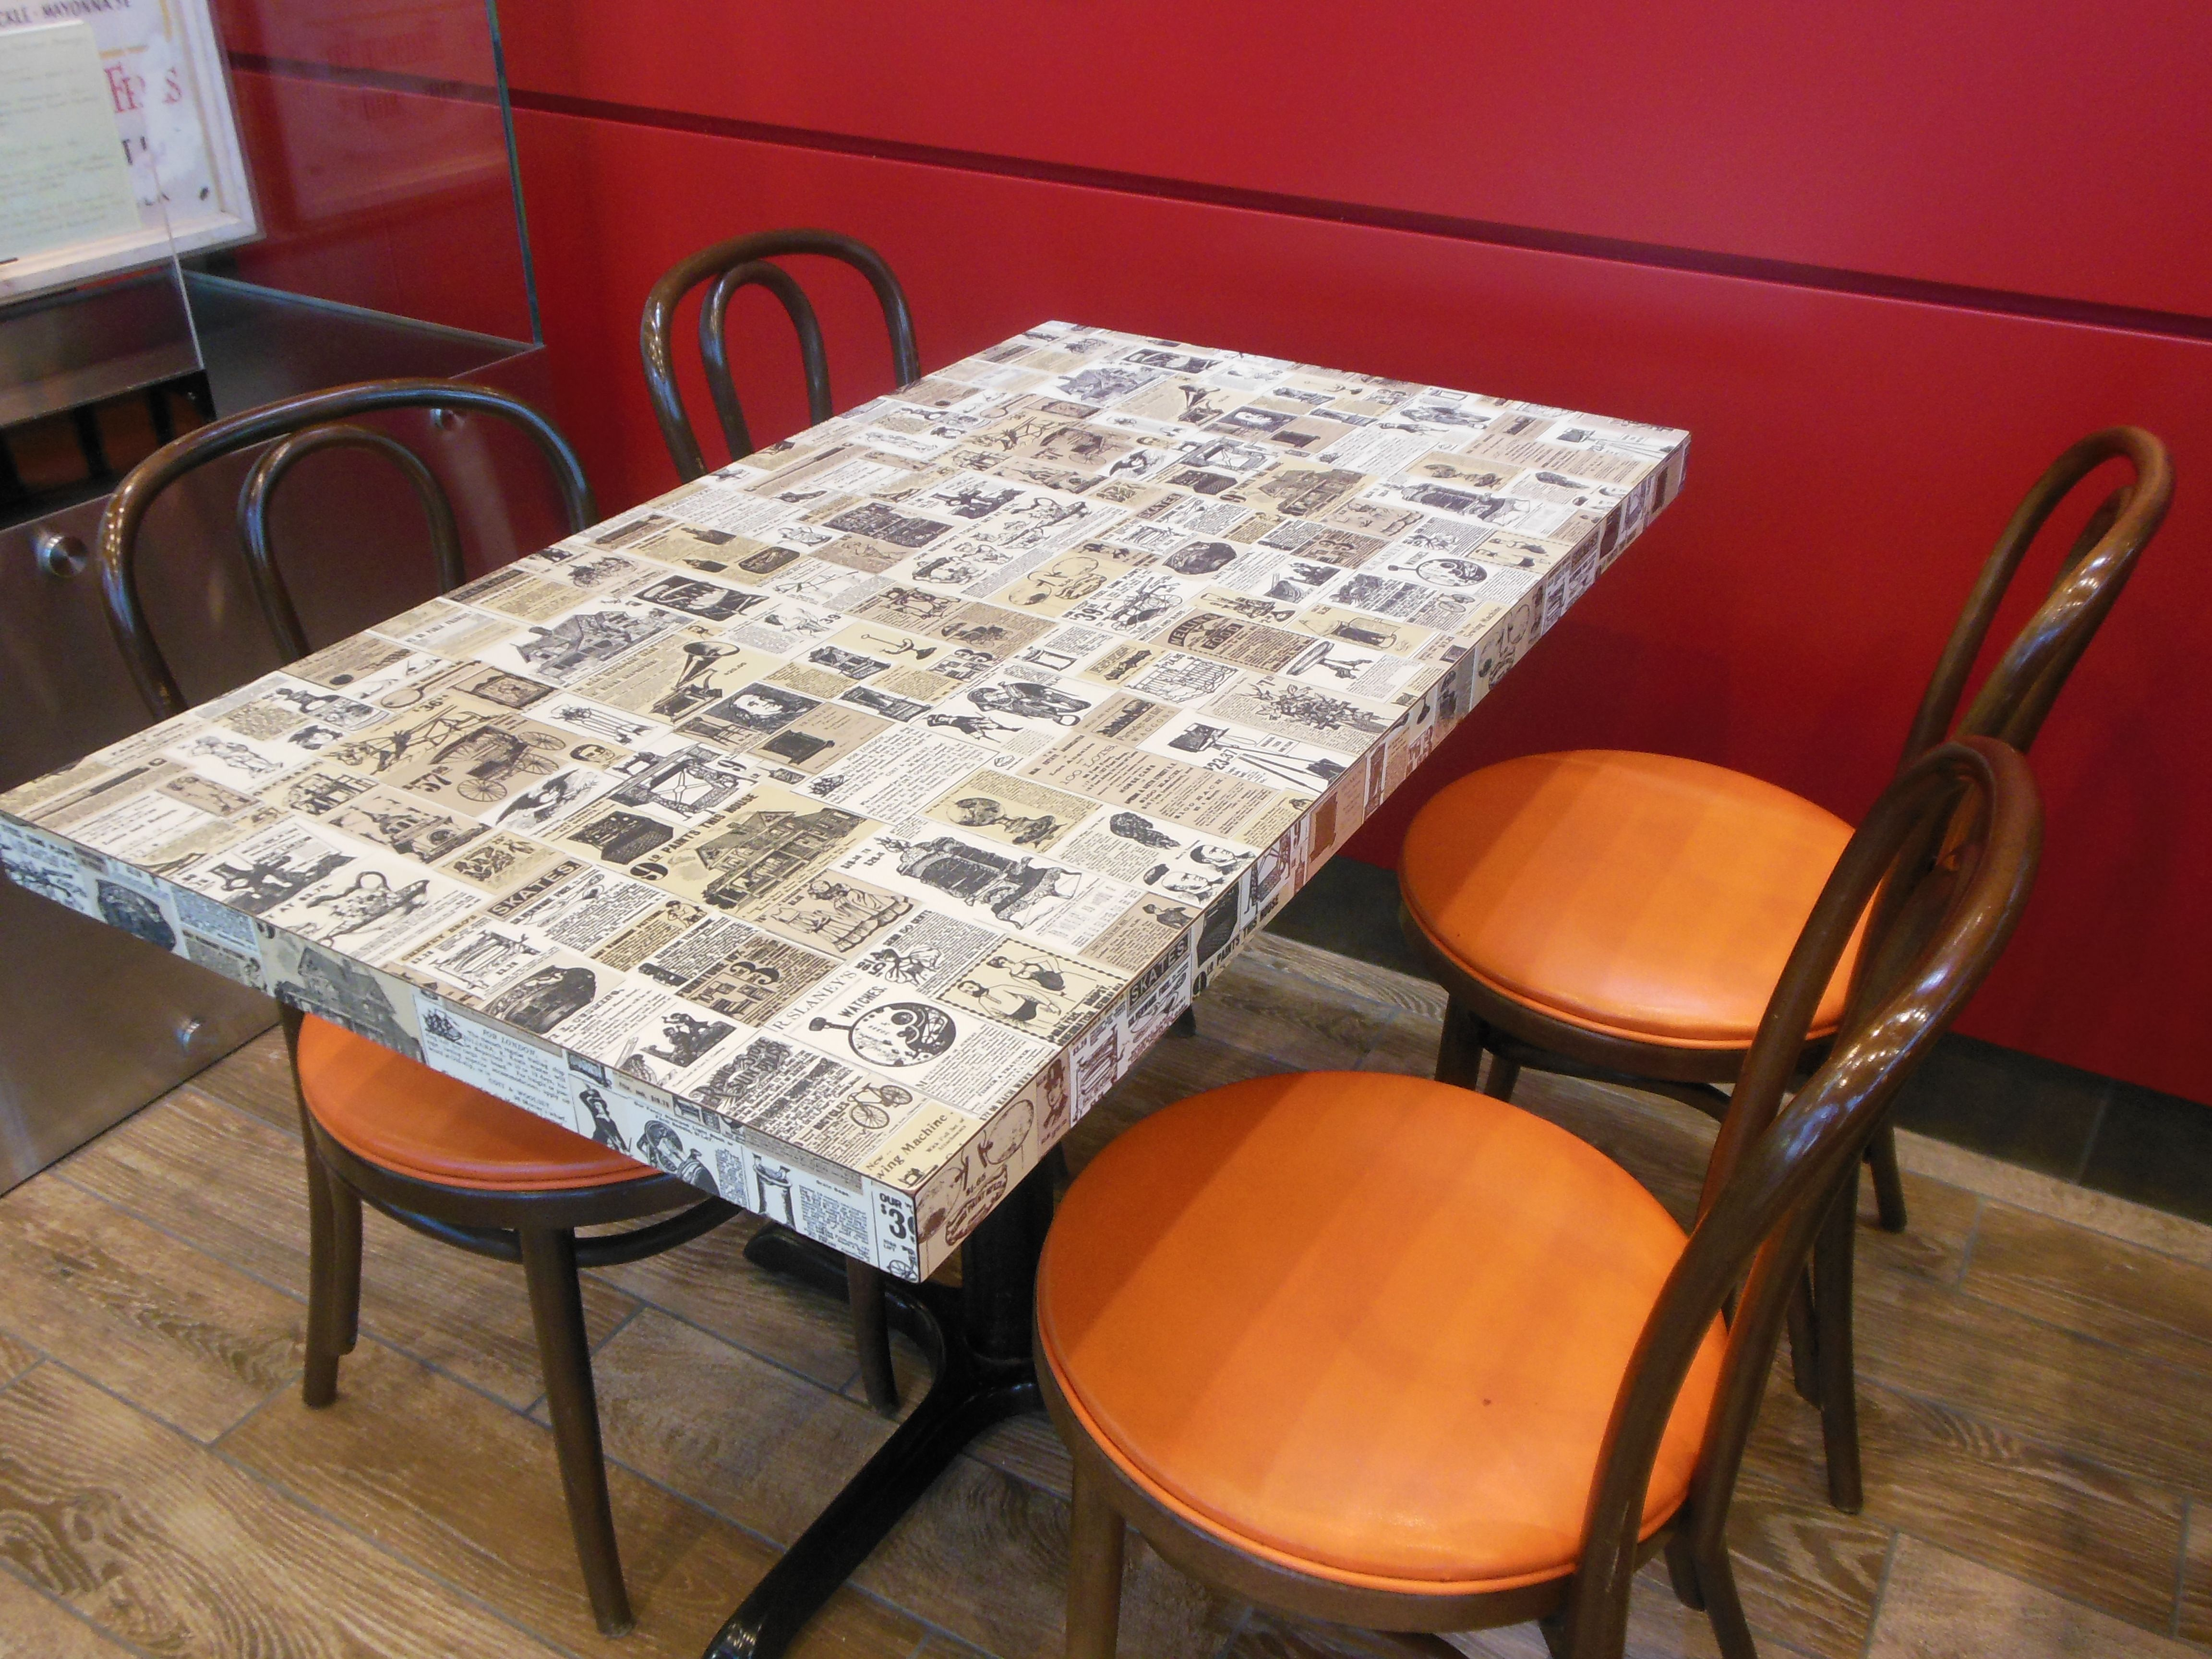 Used tables and chairs for restaurant - Used Tables And Chairs For Restaurant Vintage Wendy S Fast Food Table Chairs Used To